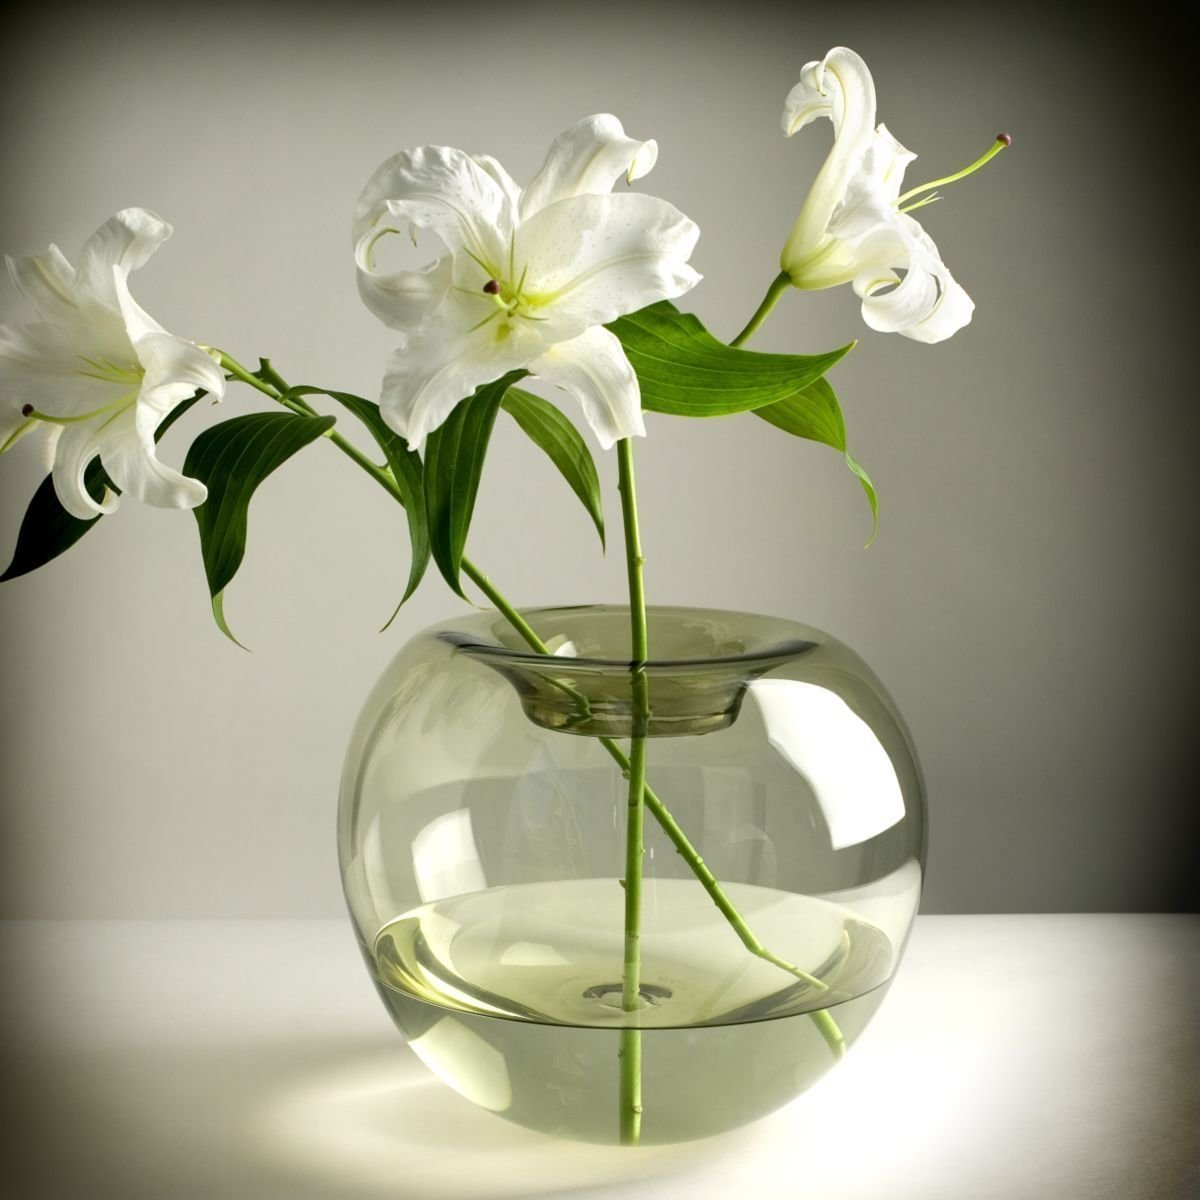 Glass is such a contemporary material that flowers placed in them immediately take on a streamlined and modern appeal. The Stamen Glass Vase by Niche Modern is one example of a cool, minimalism blown glass vase that's ideal for delicate blooms.  Photo 3 of 8 in 10 Unexpected Ways to Decorate With Flowers